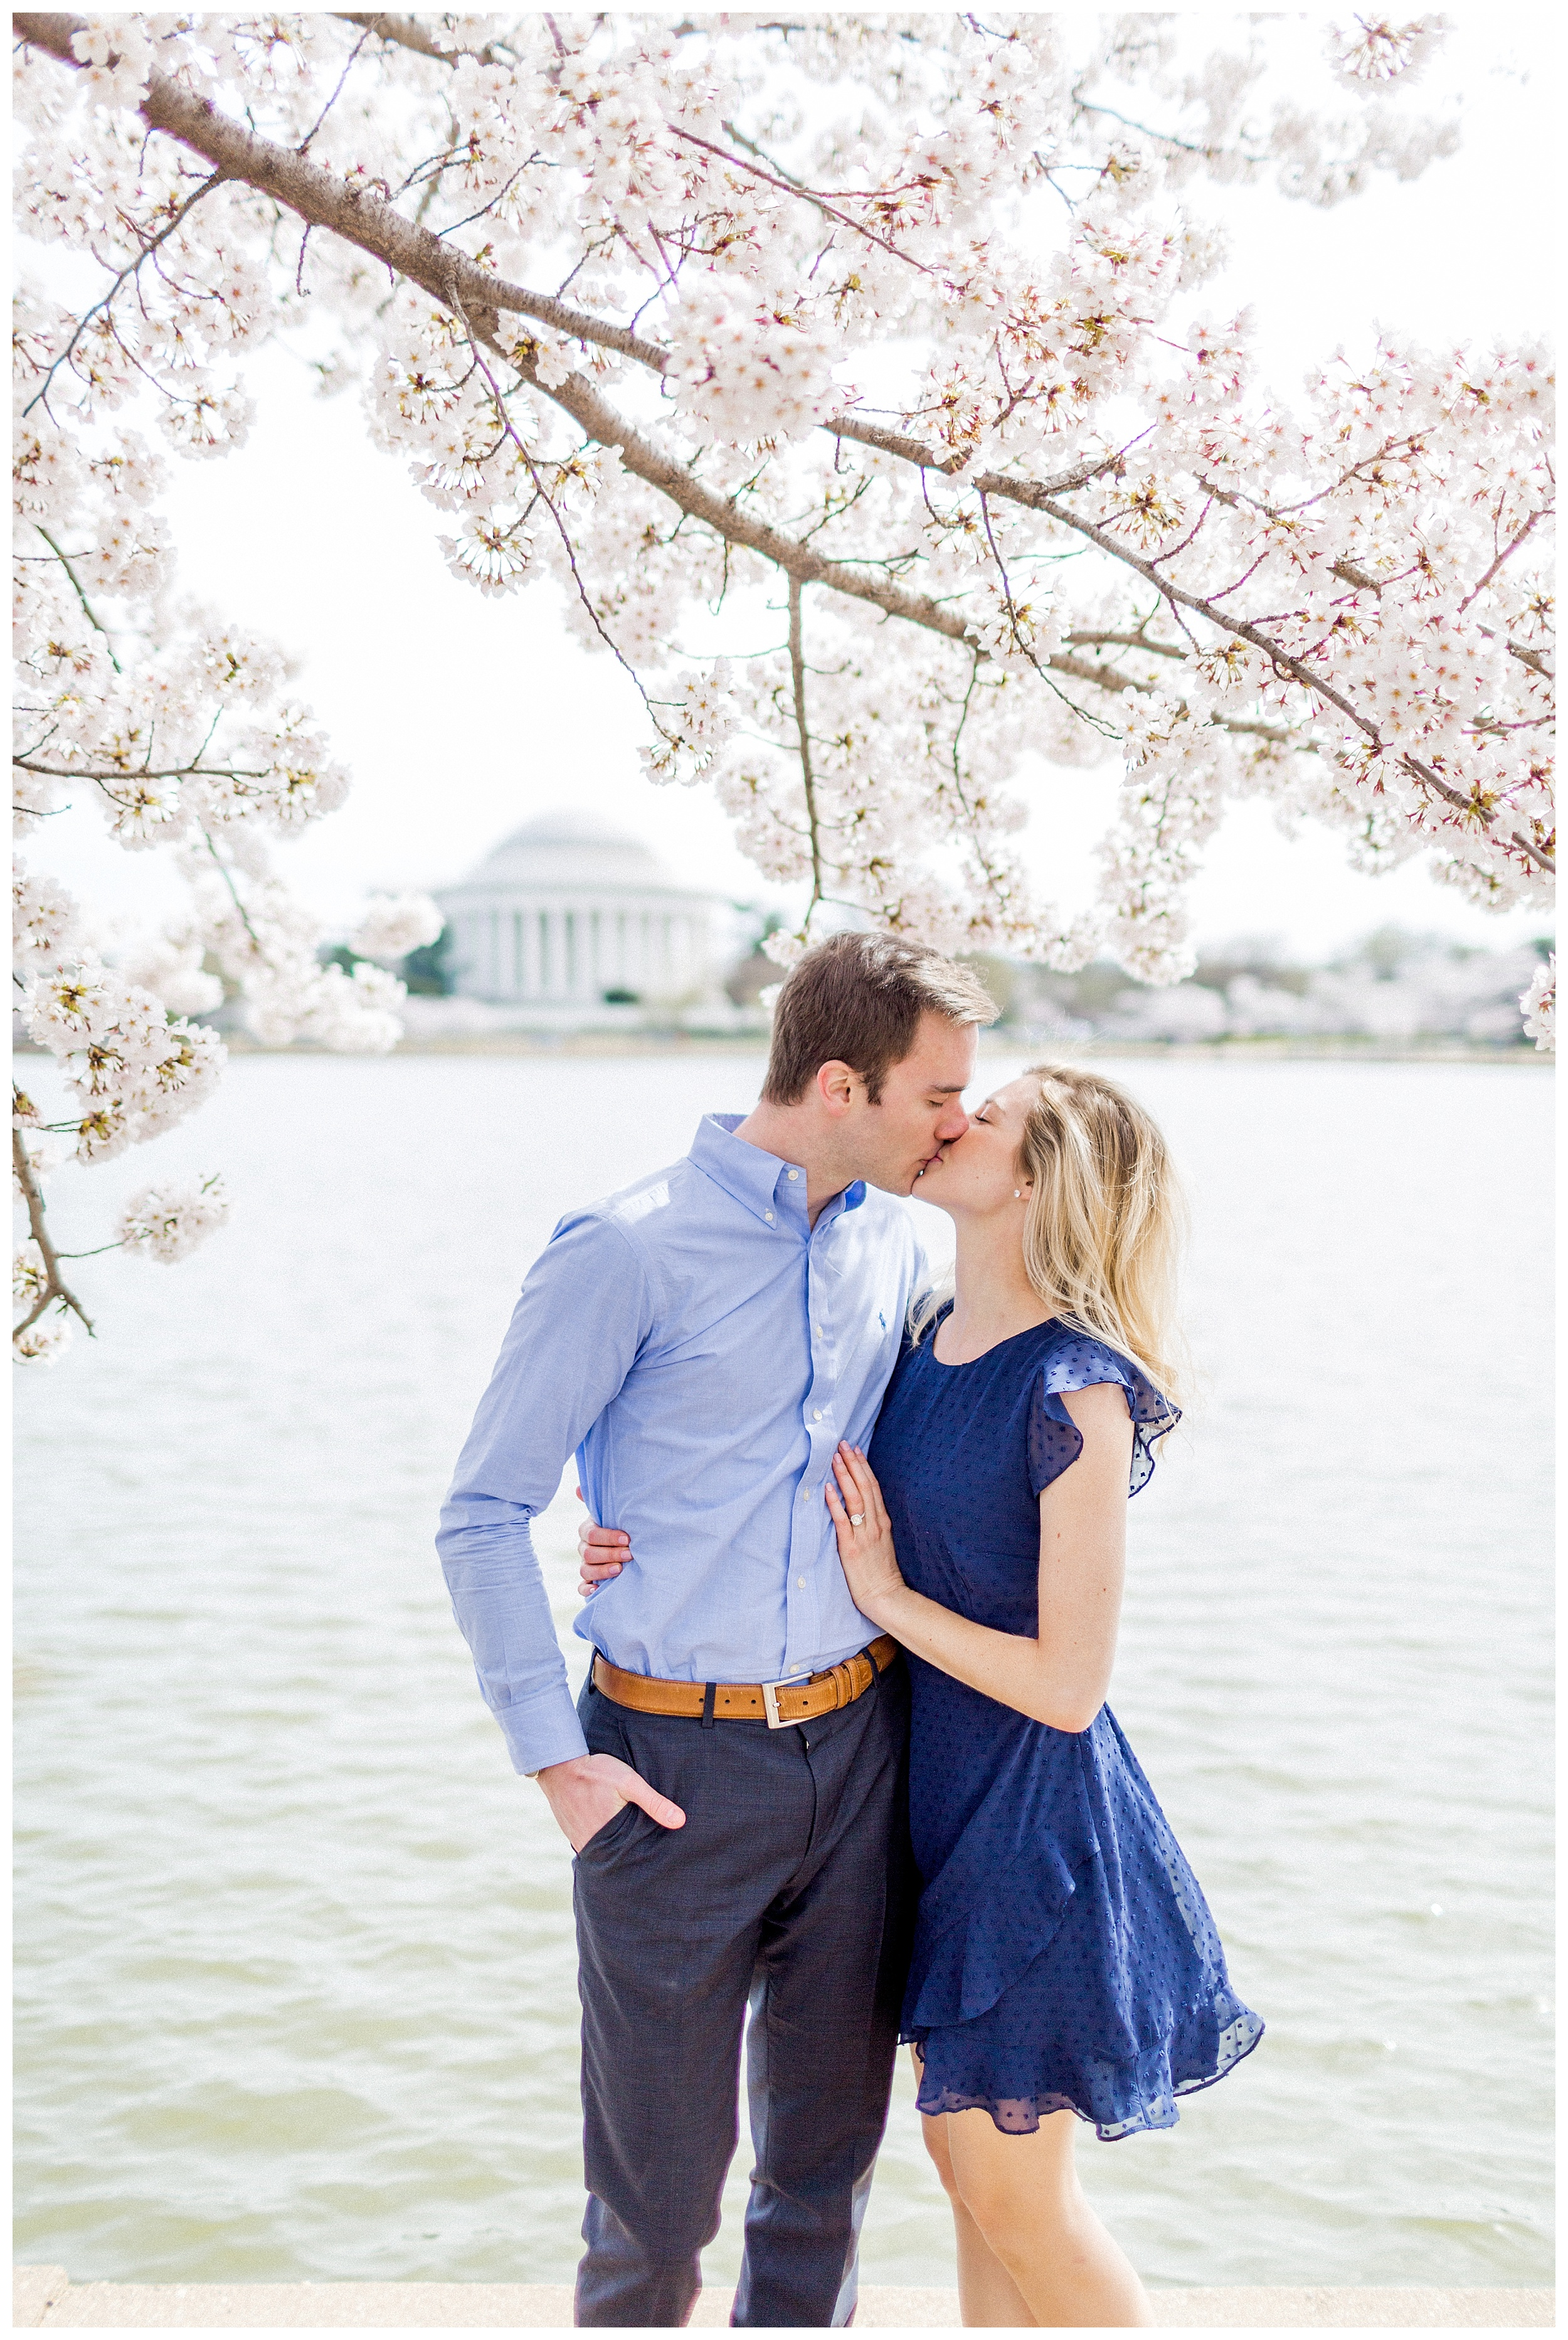 District of Columbia Cherry Blossom Engagement Session_0001.jpg